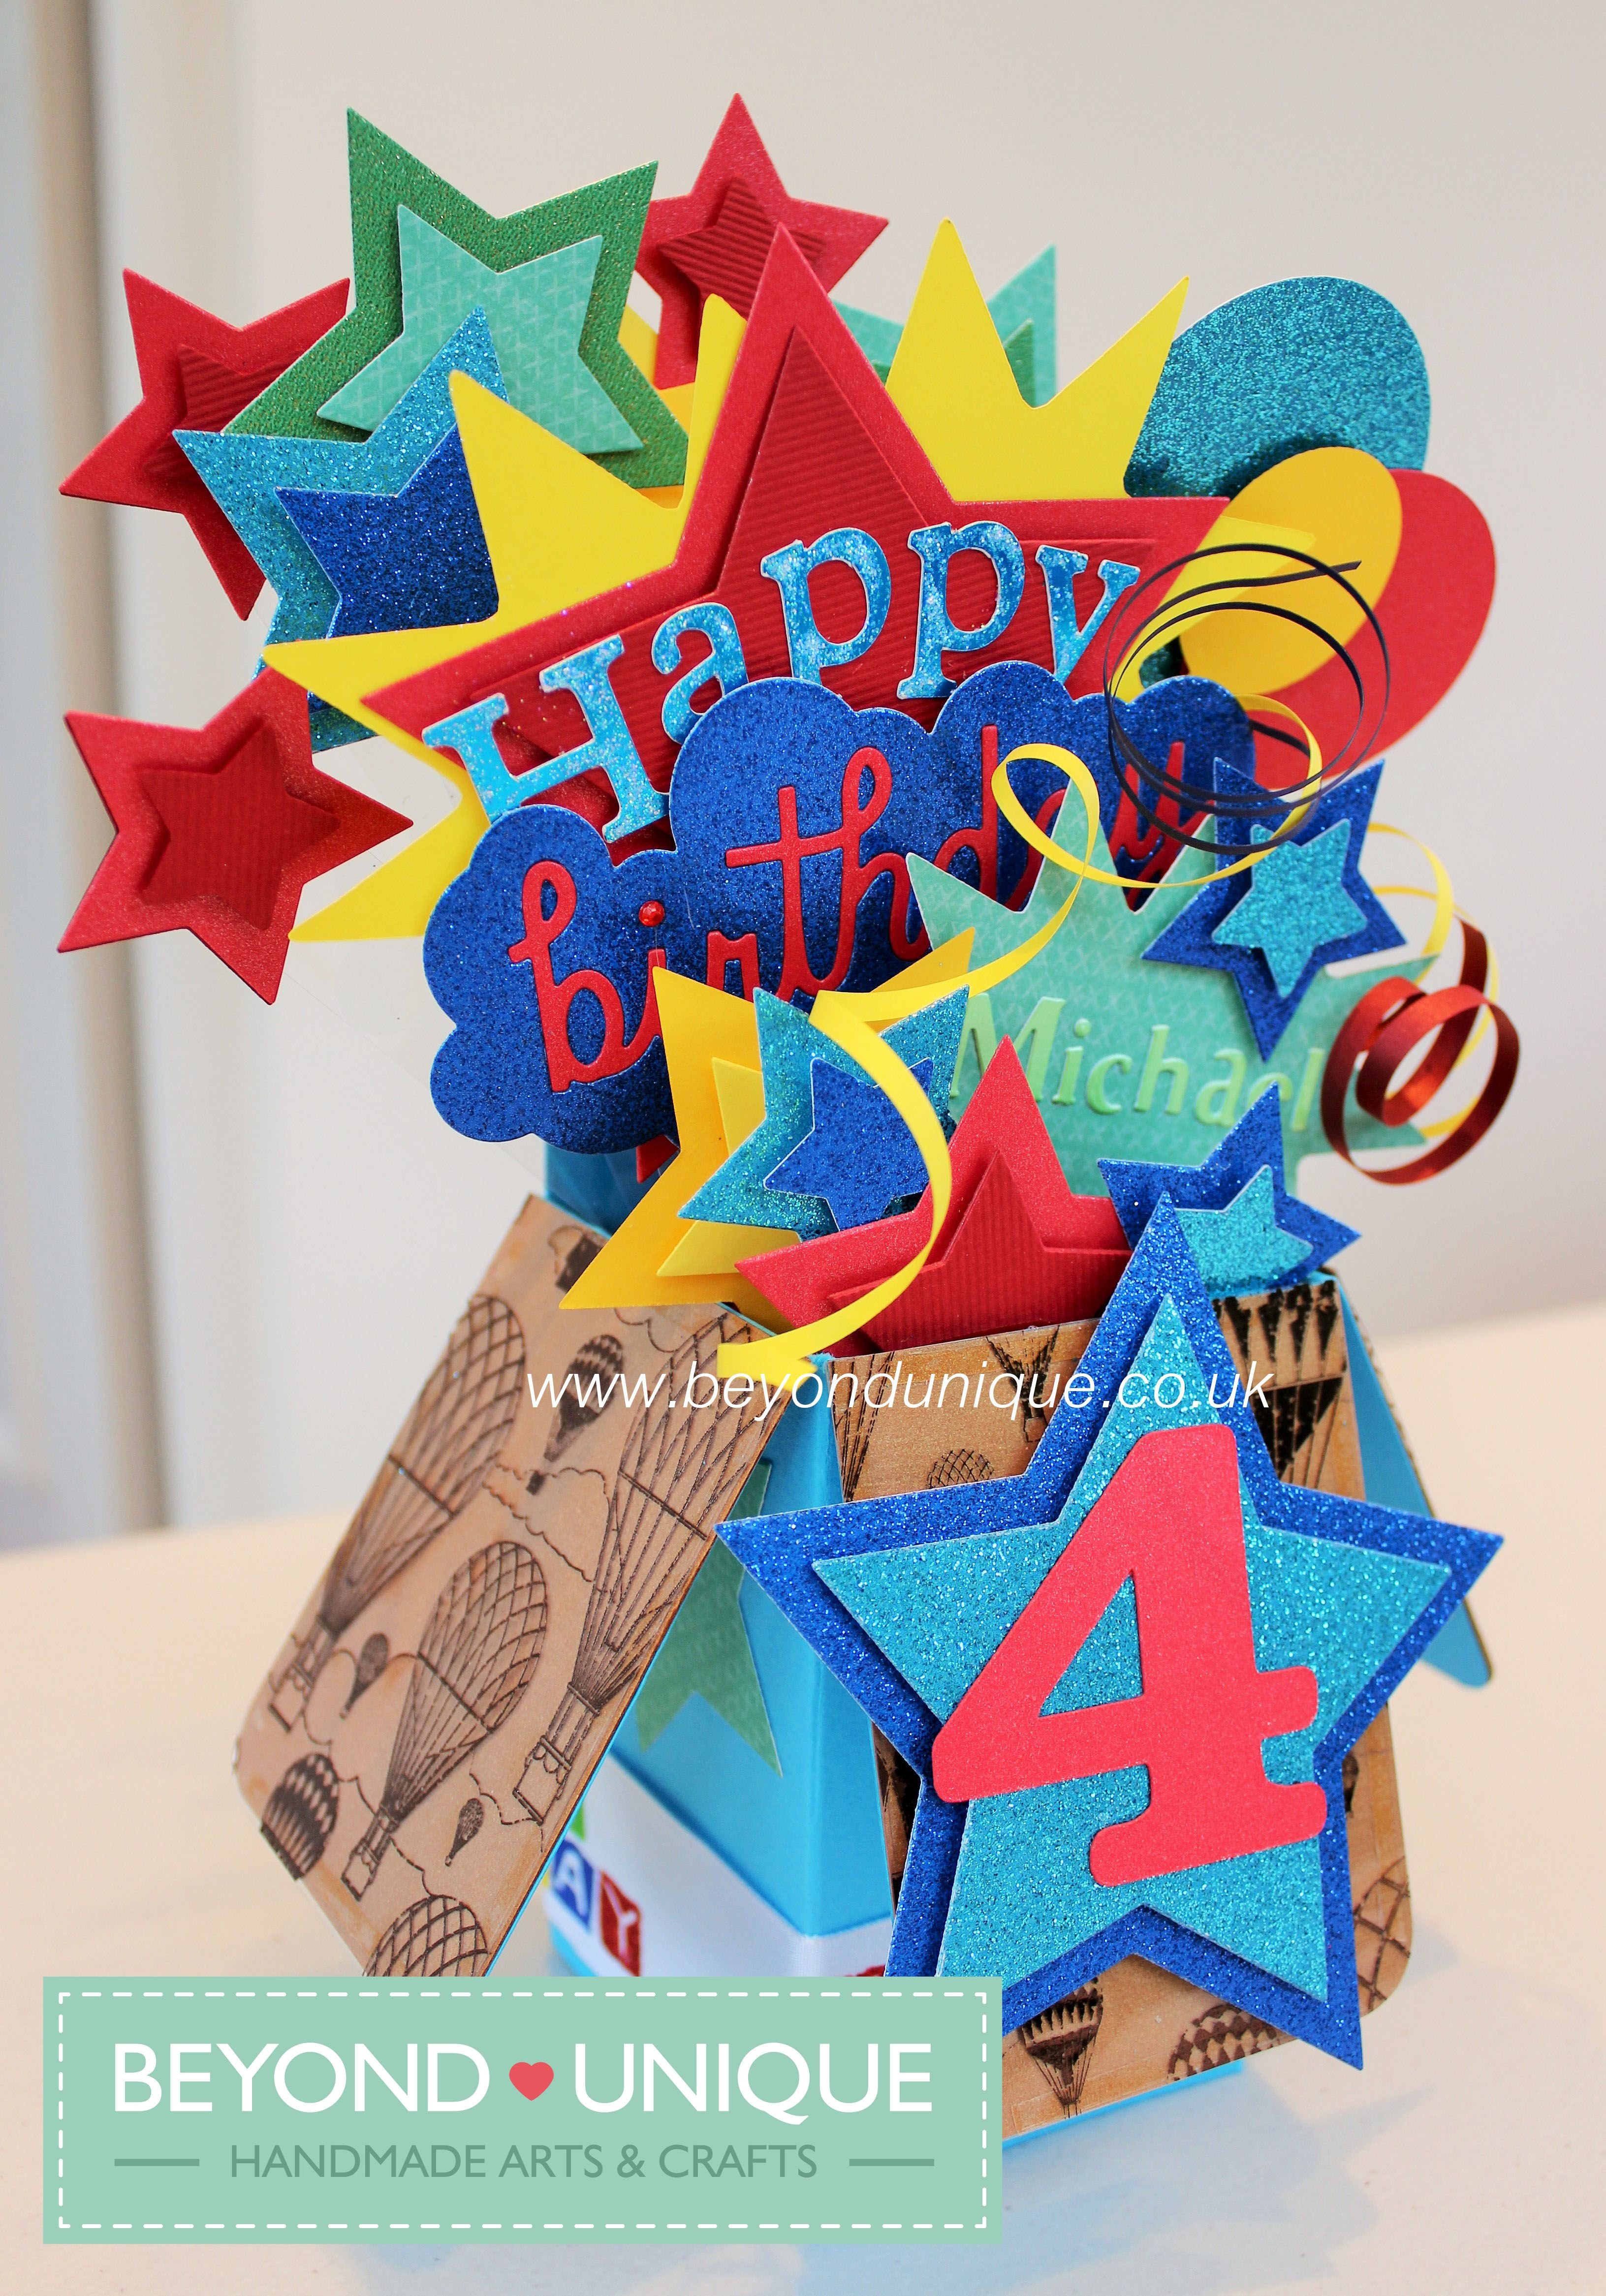 Handmade Boys Happy Birthday Pop Up Box Card Design Please Like Our Facebook Page Https Www Facebook Com Exploding Box Card Pop Up Box Cards Pop Up Cards